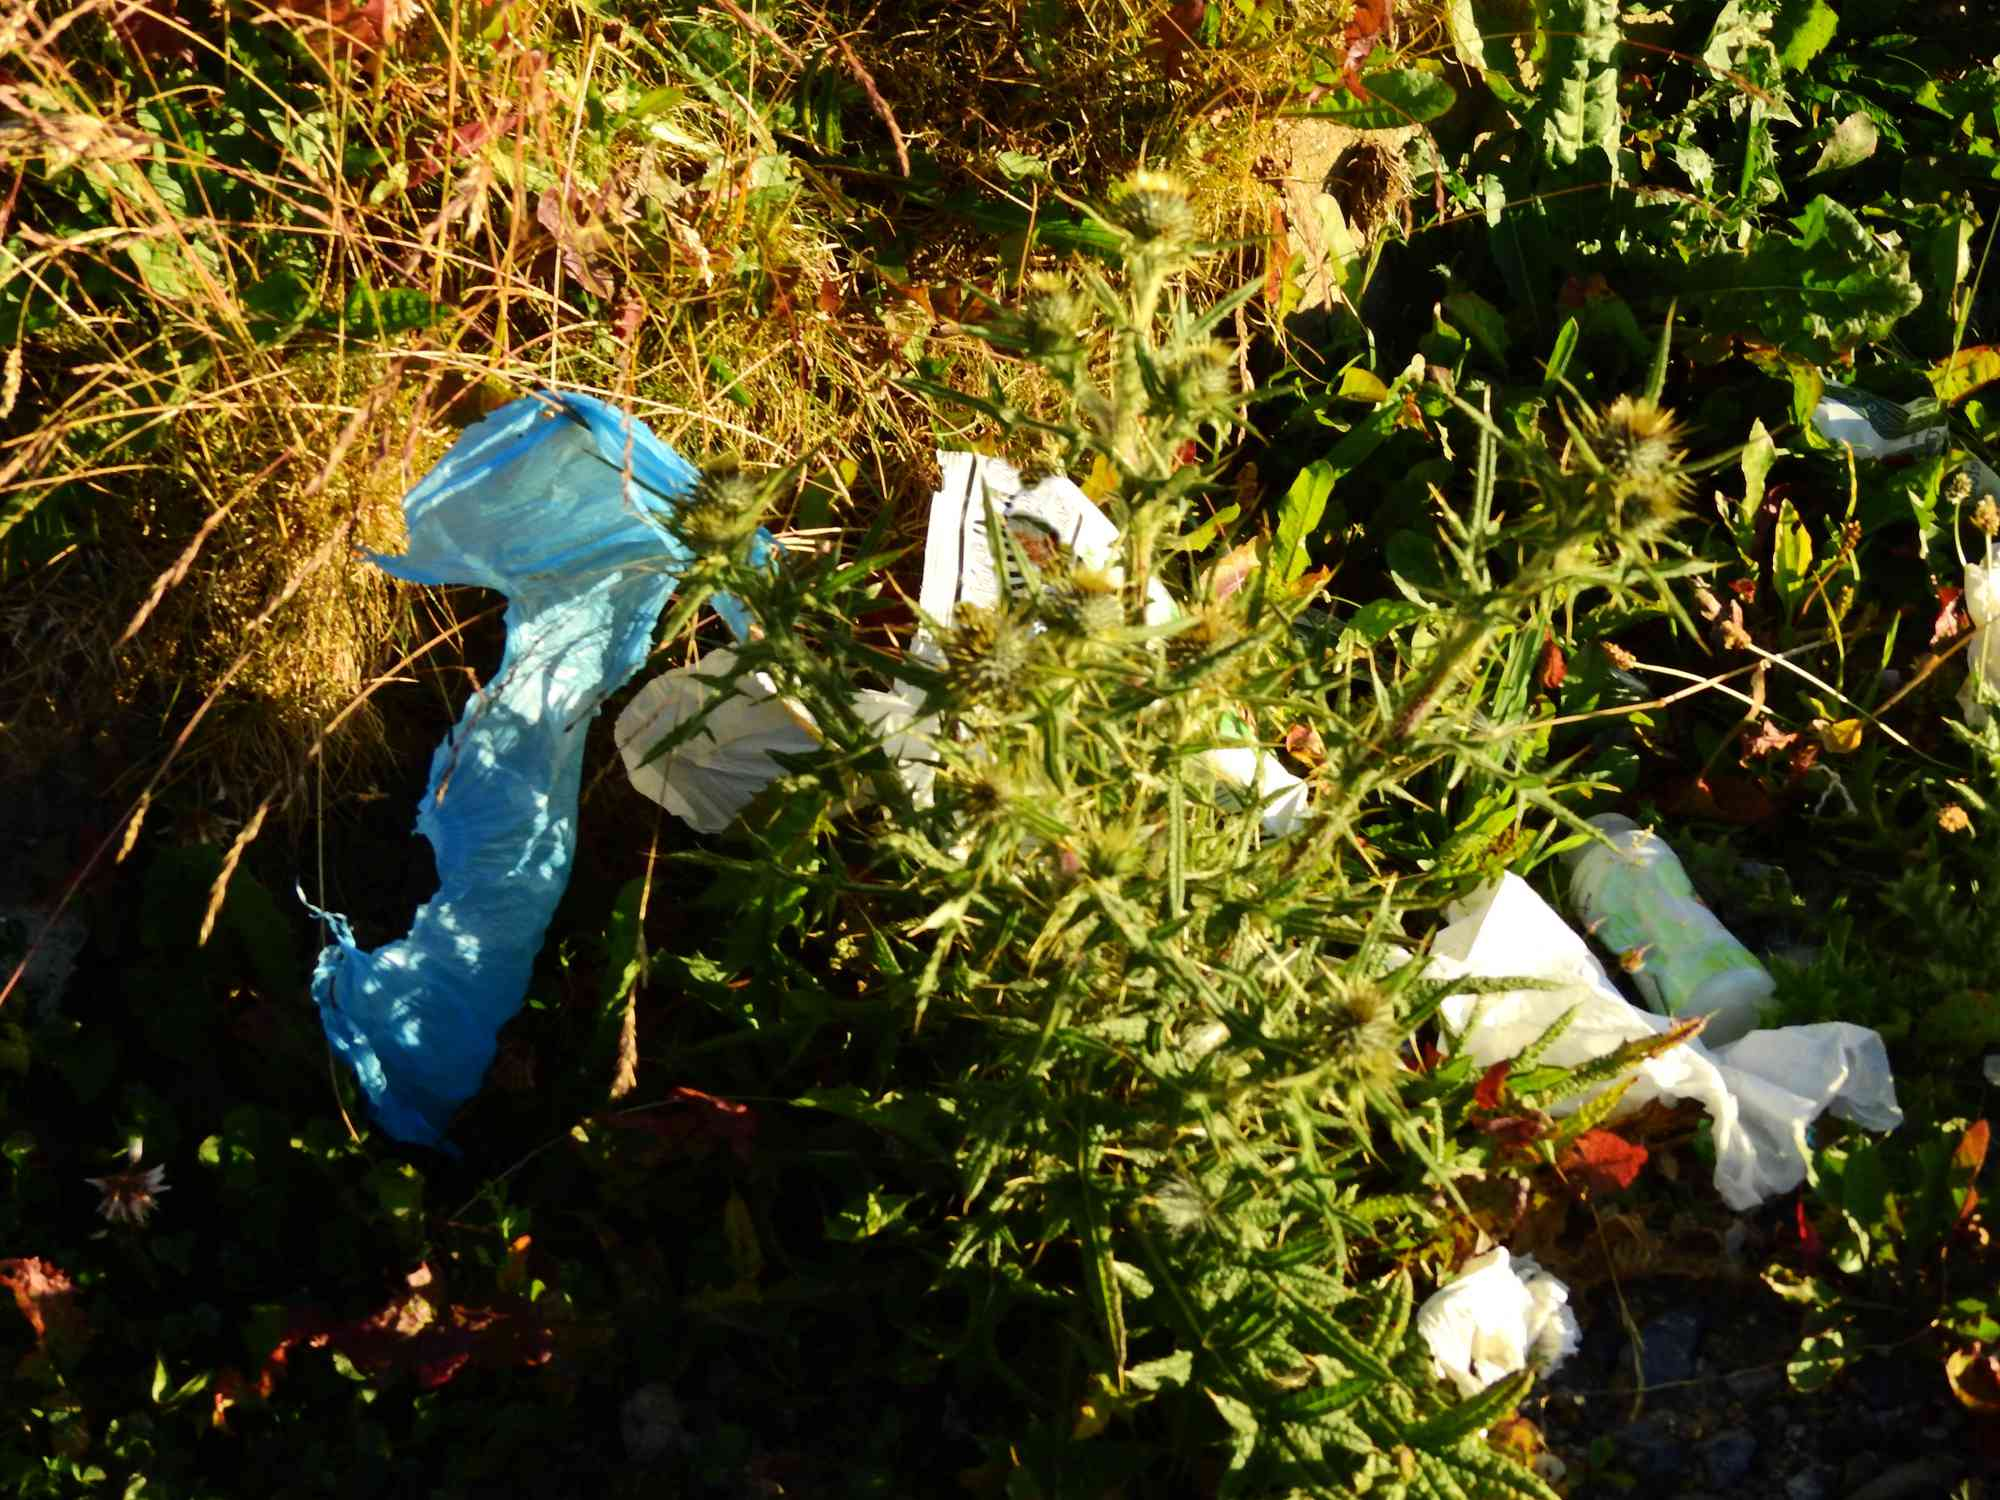 Garbage and plastics in nature